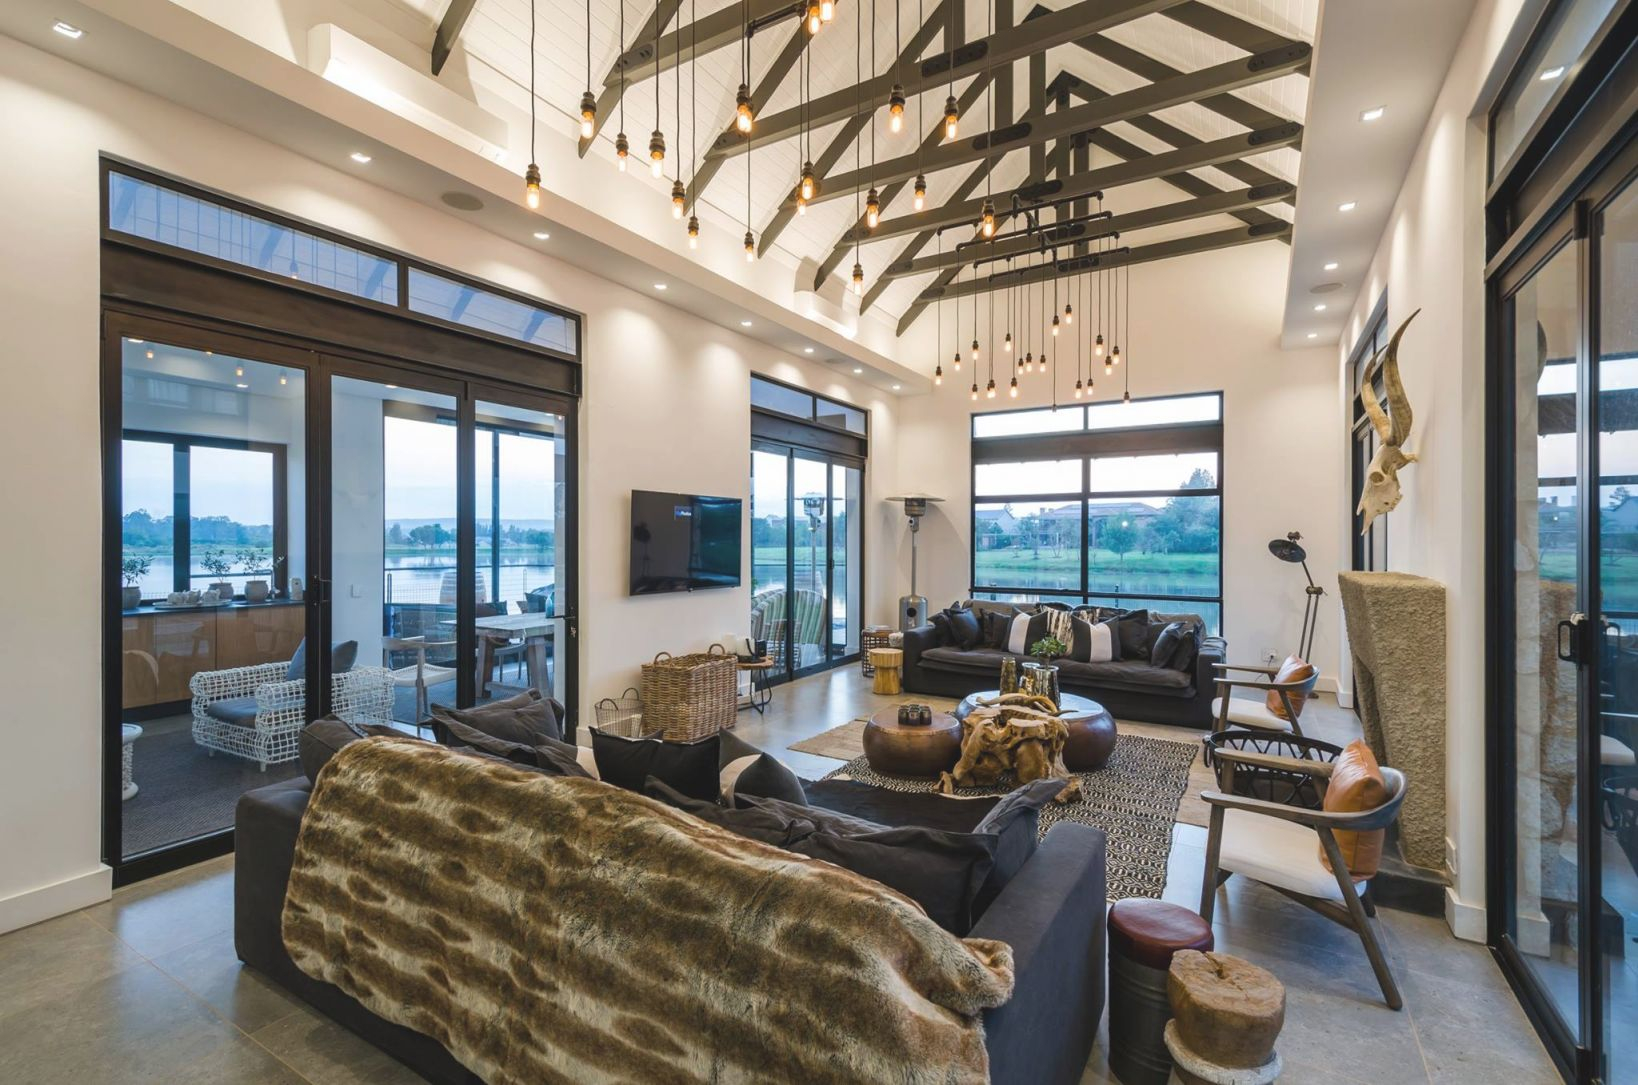 Inspiring Home Decor Ideas From Africa – Dream Africa with regard to Best of African Decor Living Room